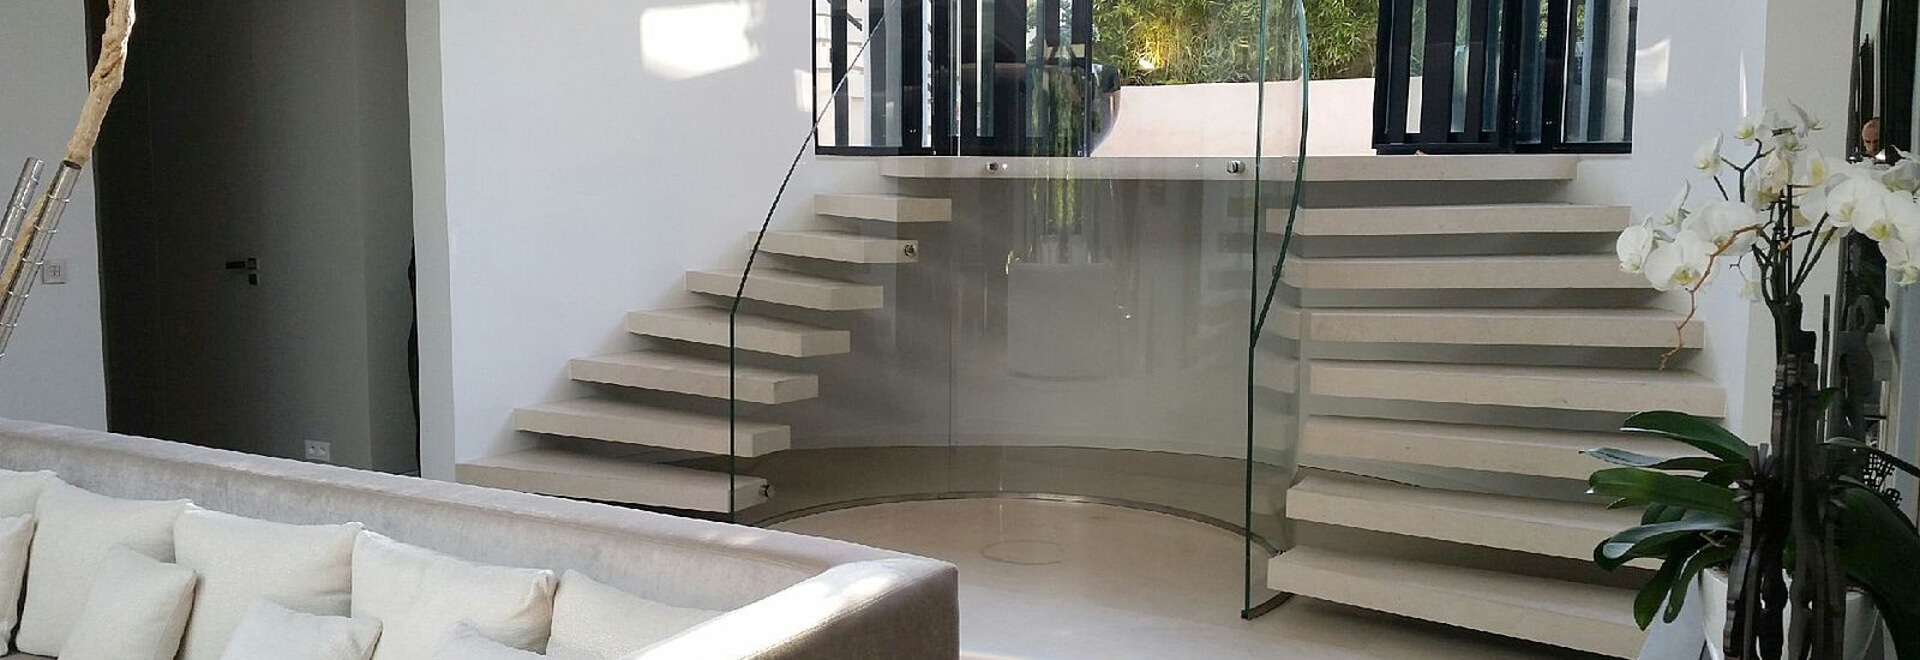 Clear curved, bent glass railing Glassy